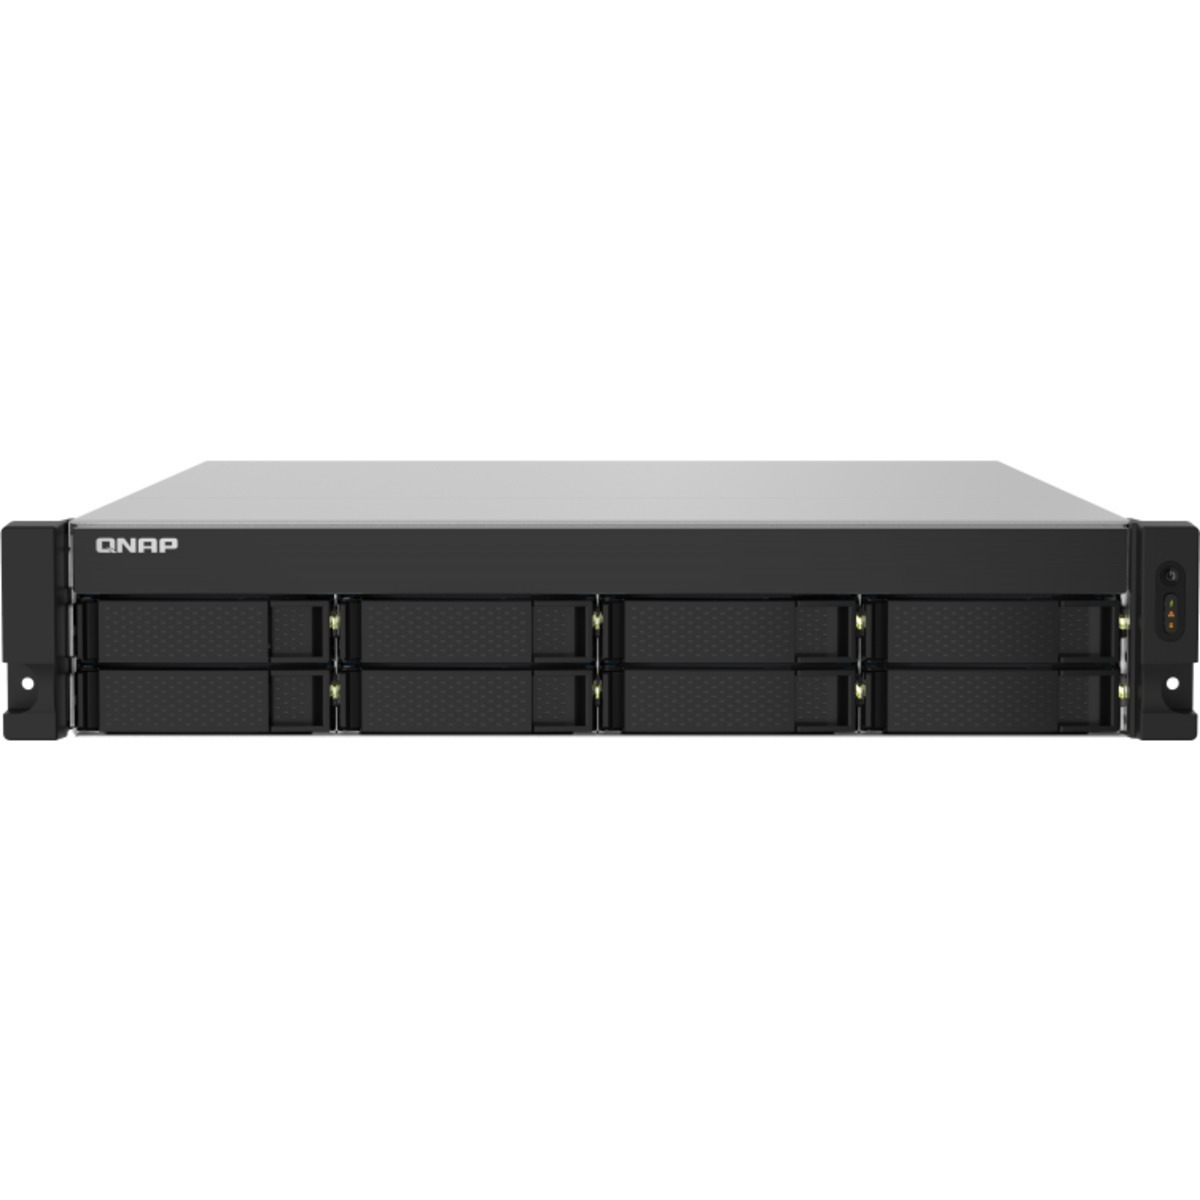 buy $2185 QNAP TS-832PXU 30tb RackMount NAS - Network Attached Storage Device 5x6000gb Western Digital Gold WD6003FRYZ 3.5 7200rpm SATA 6Gb/s HDD ENTERPRISE Class Drives Installed - Burn-In Tested - nas headquarters buy network attached storage server device das new raid-5 free shipping usa holiday new year clearance sale TS-832PXU